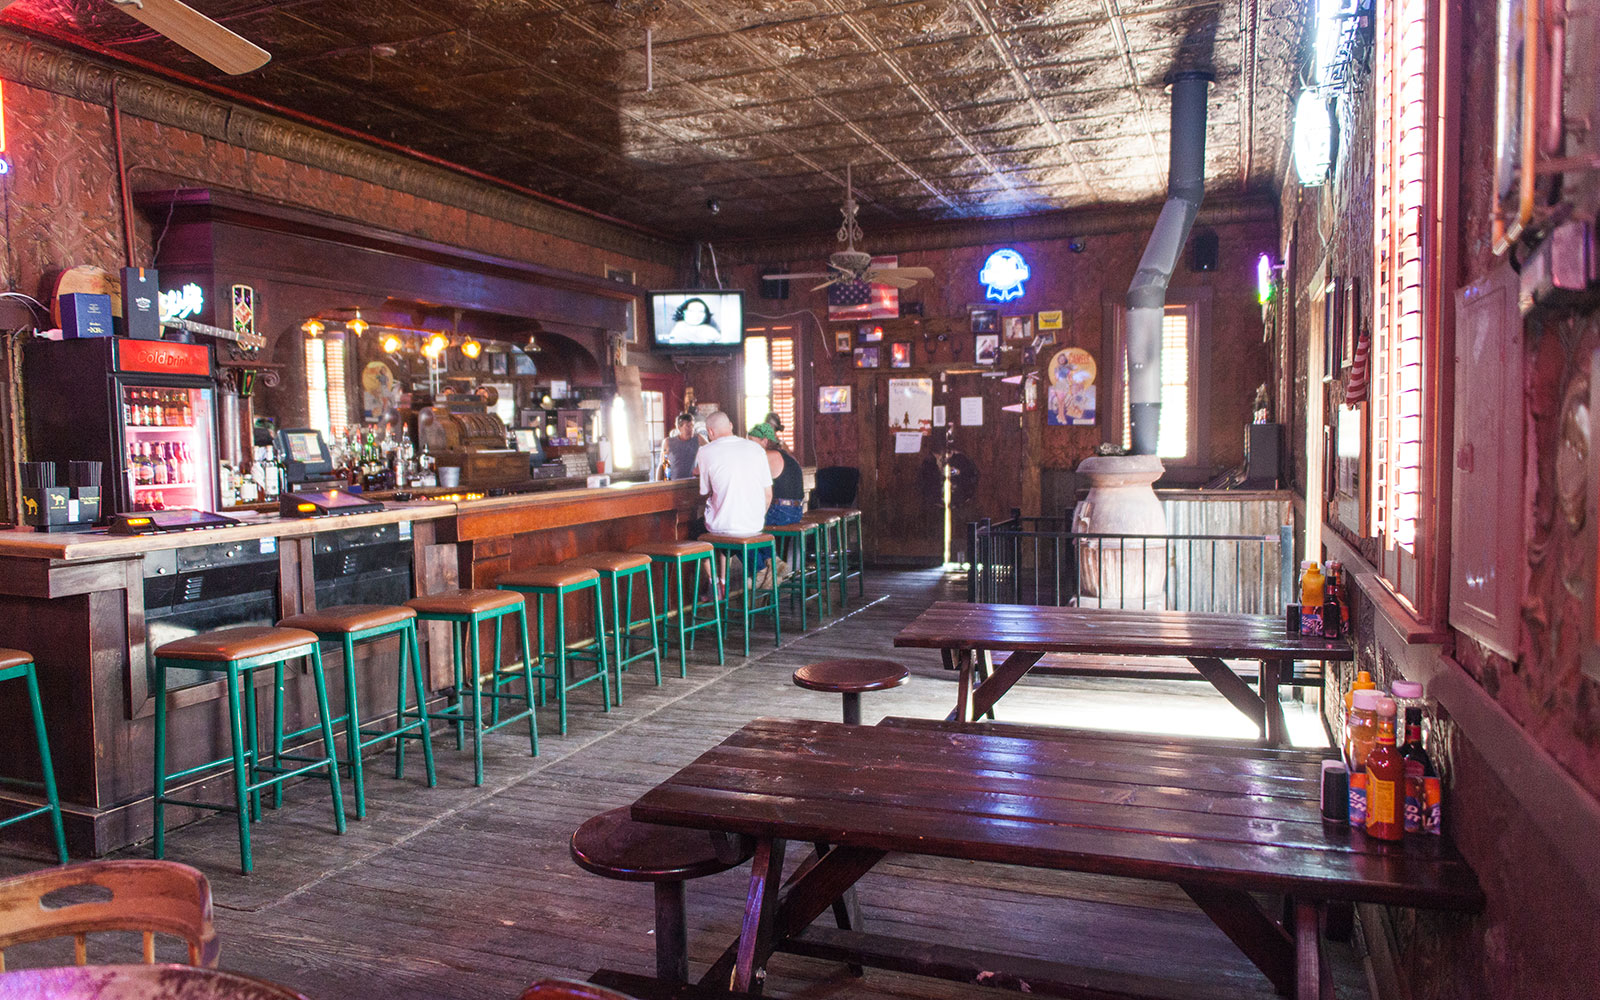 America's Most Haunted Bars and Restaurants: Pioneer Saloon, Goodsprings, NV